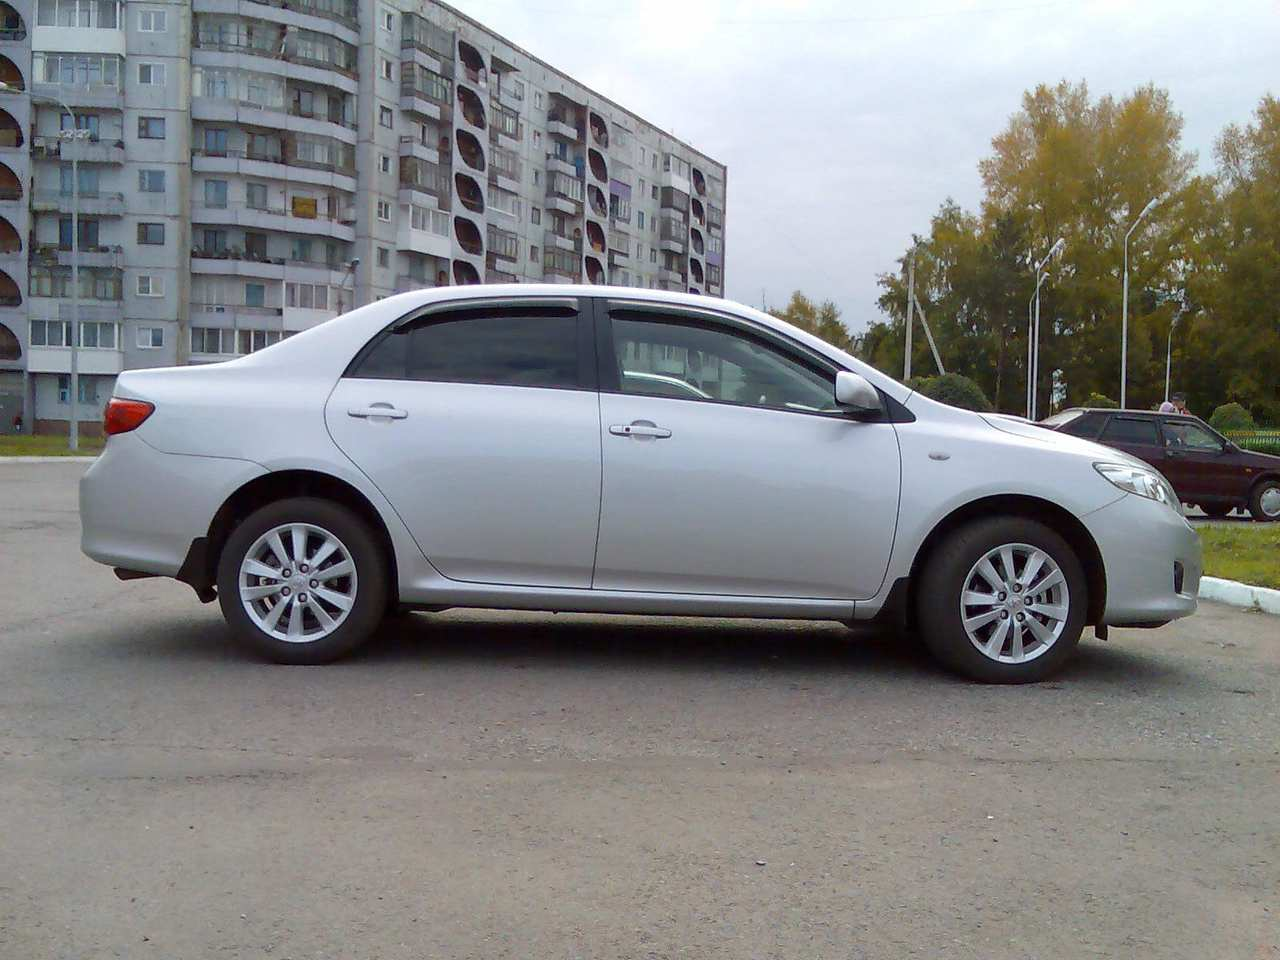 used 2007 toyota corolla photos 1600cc gasoline ff automatic for sale. Black Bedroom Furniture Sets. Home Design Ideas